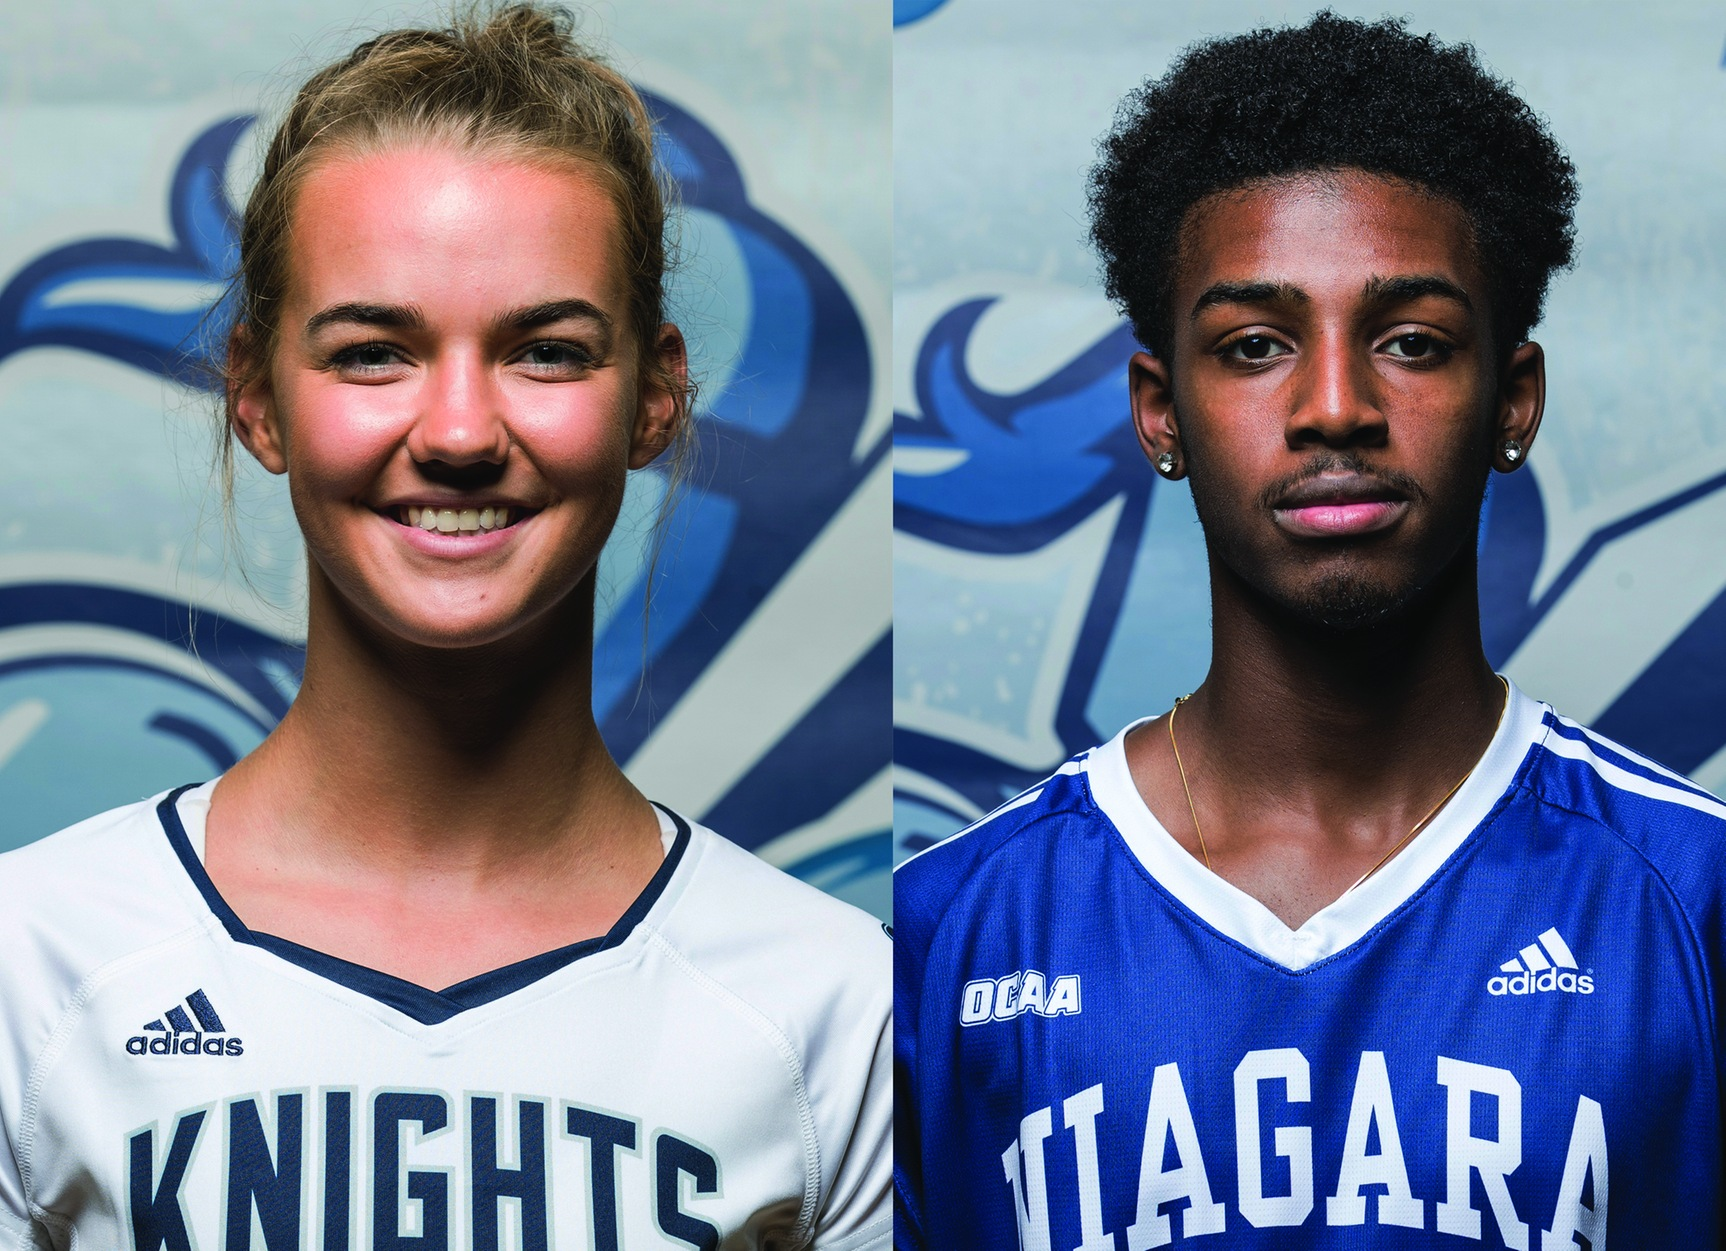 NEWS: McFadden and Milne named Athletes of the Week